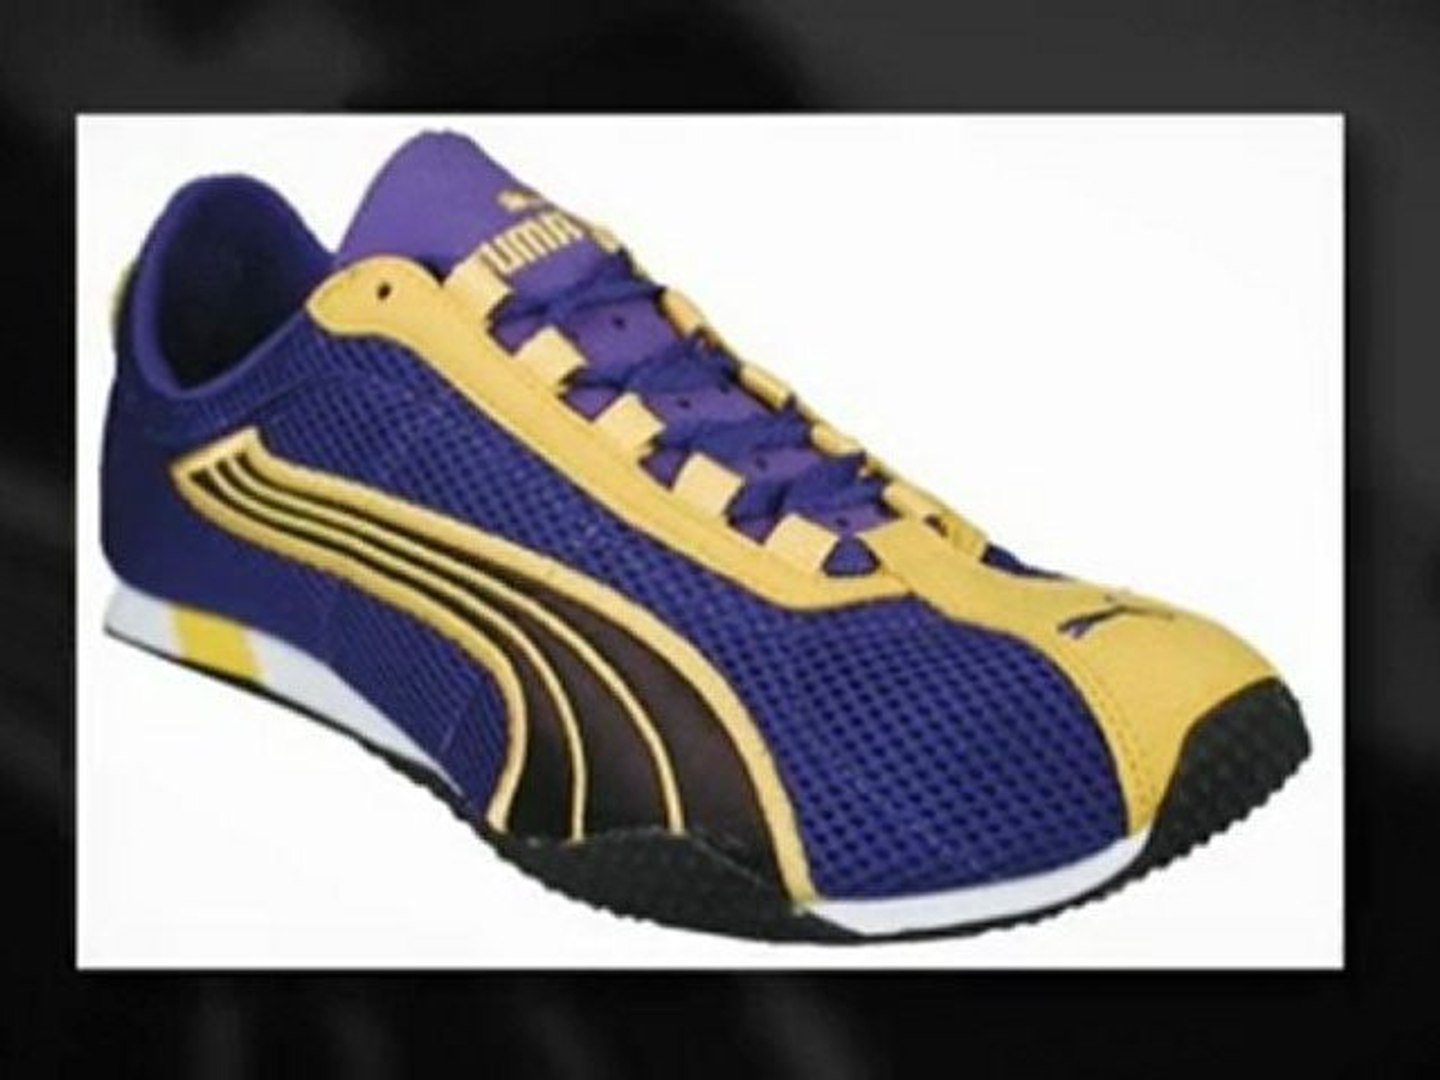 Puma 2011 H Cross Shoe Best Training Review Price Street 1uFKc35TJl